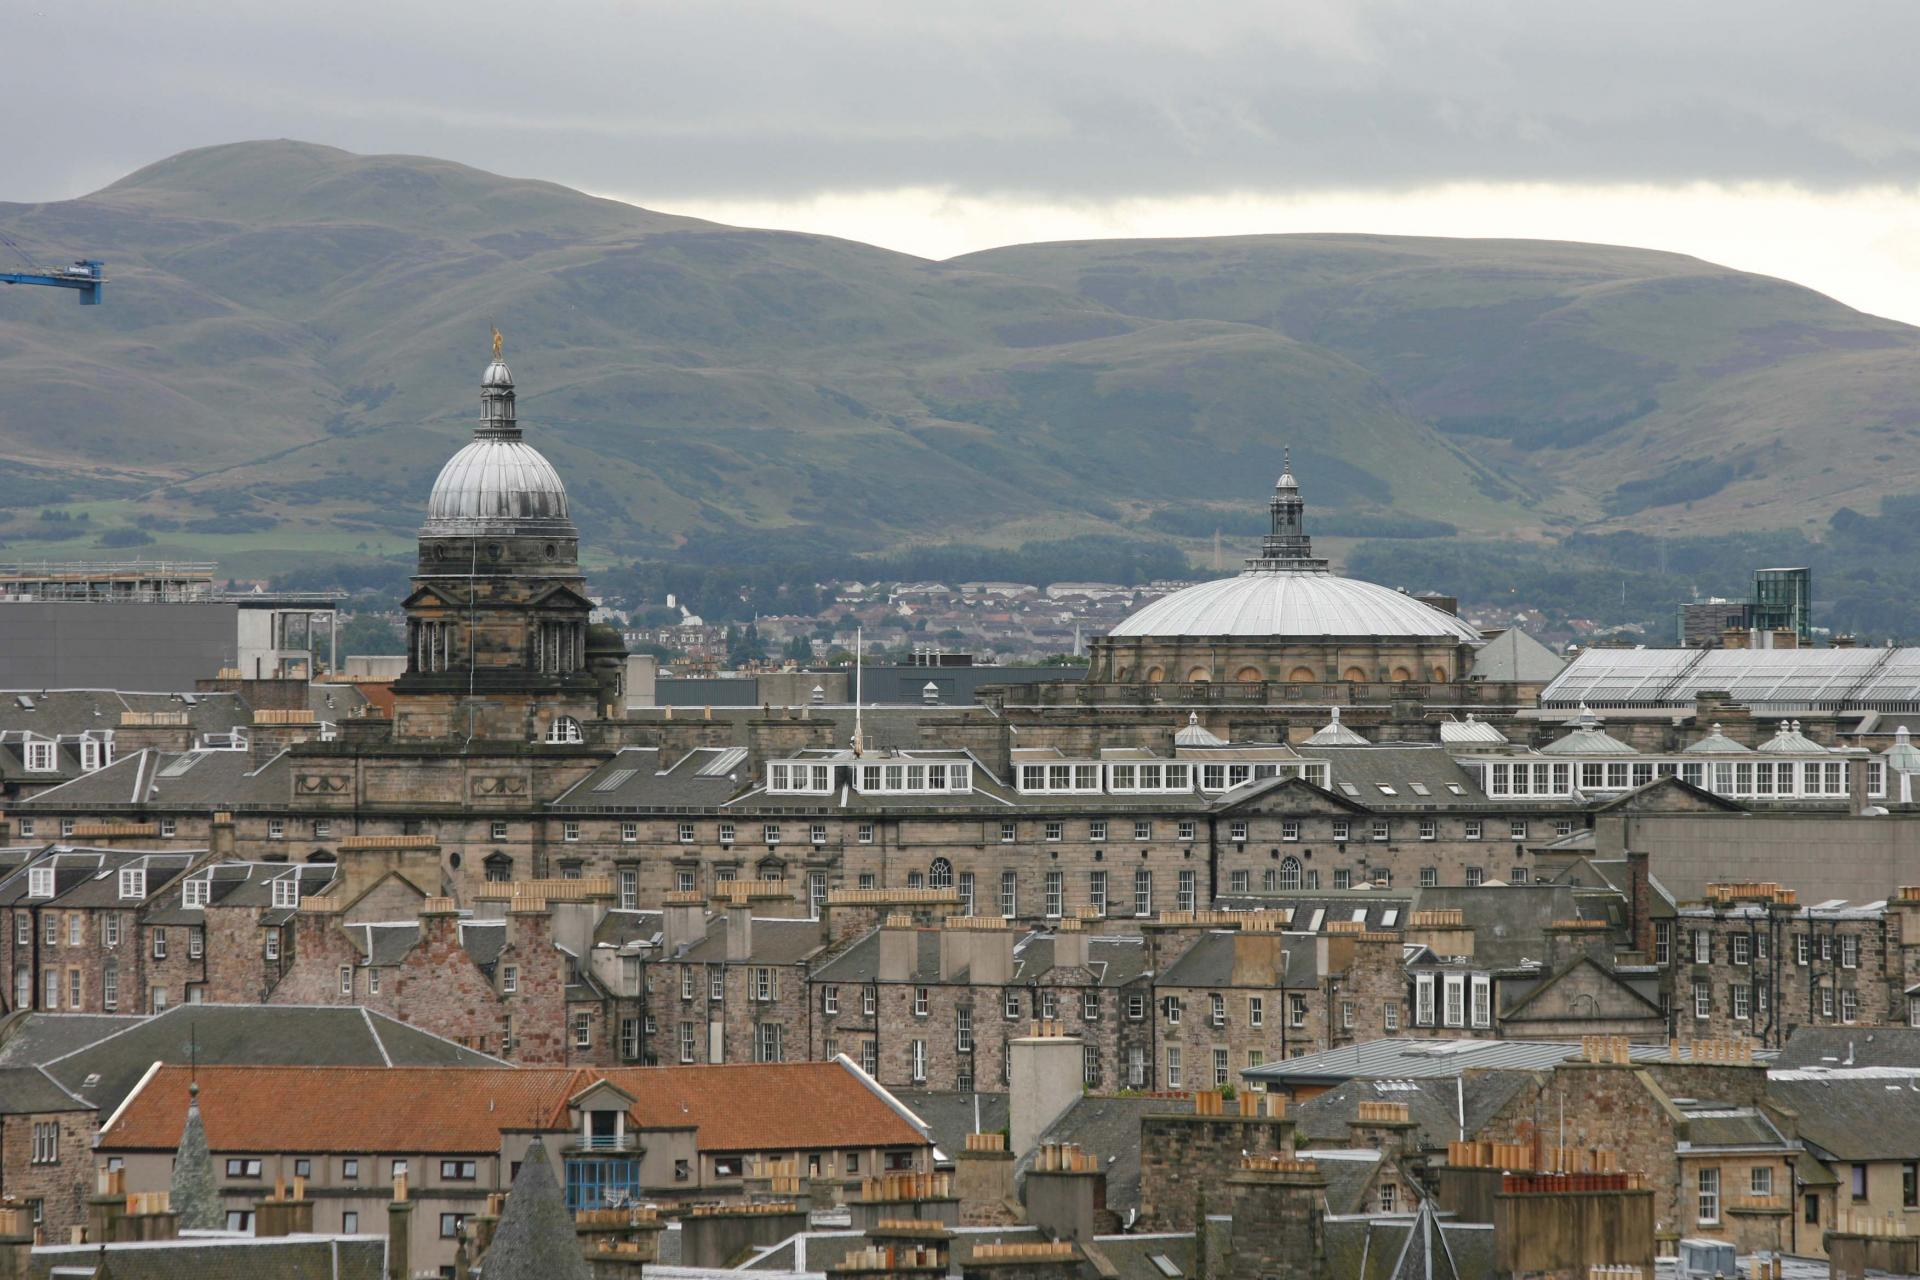 The domes of Old College and the McEwan Hall